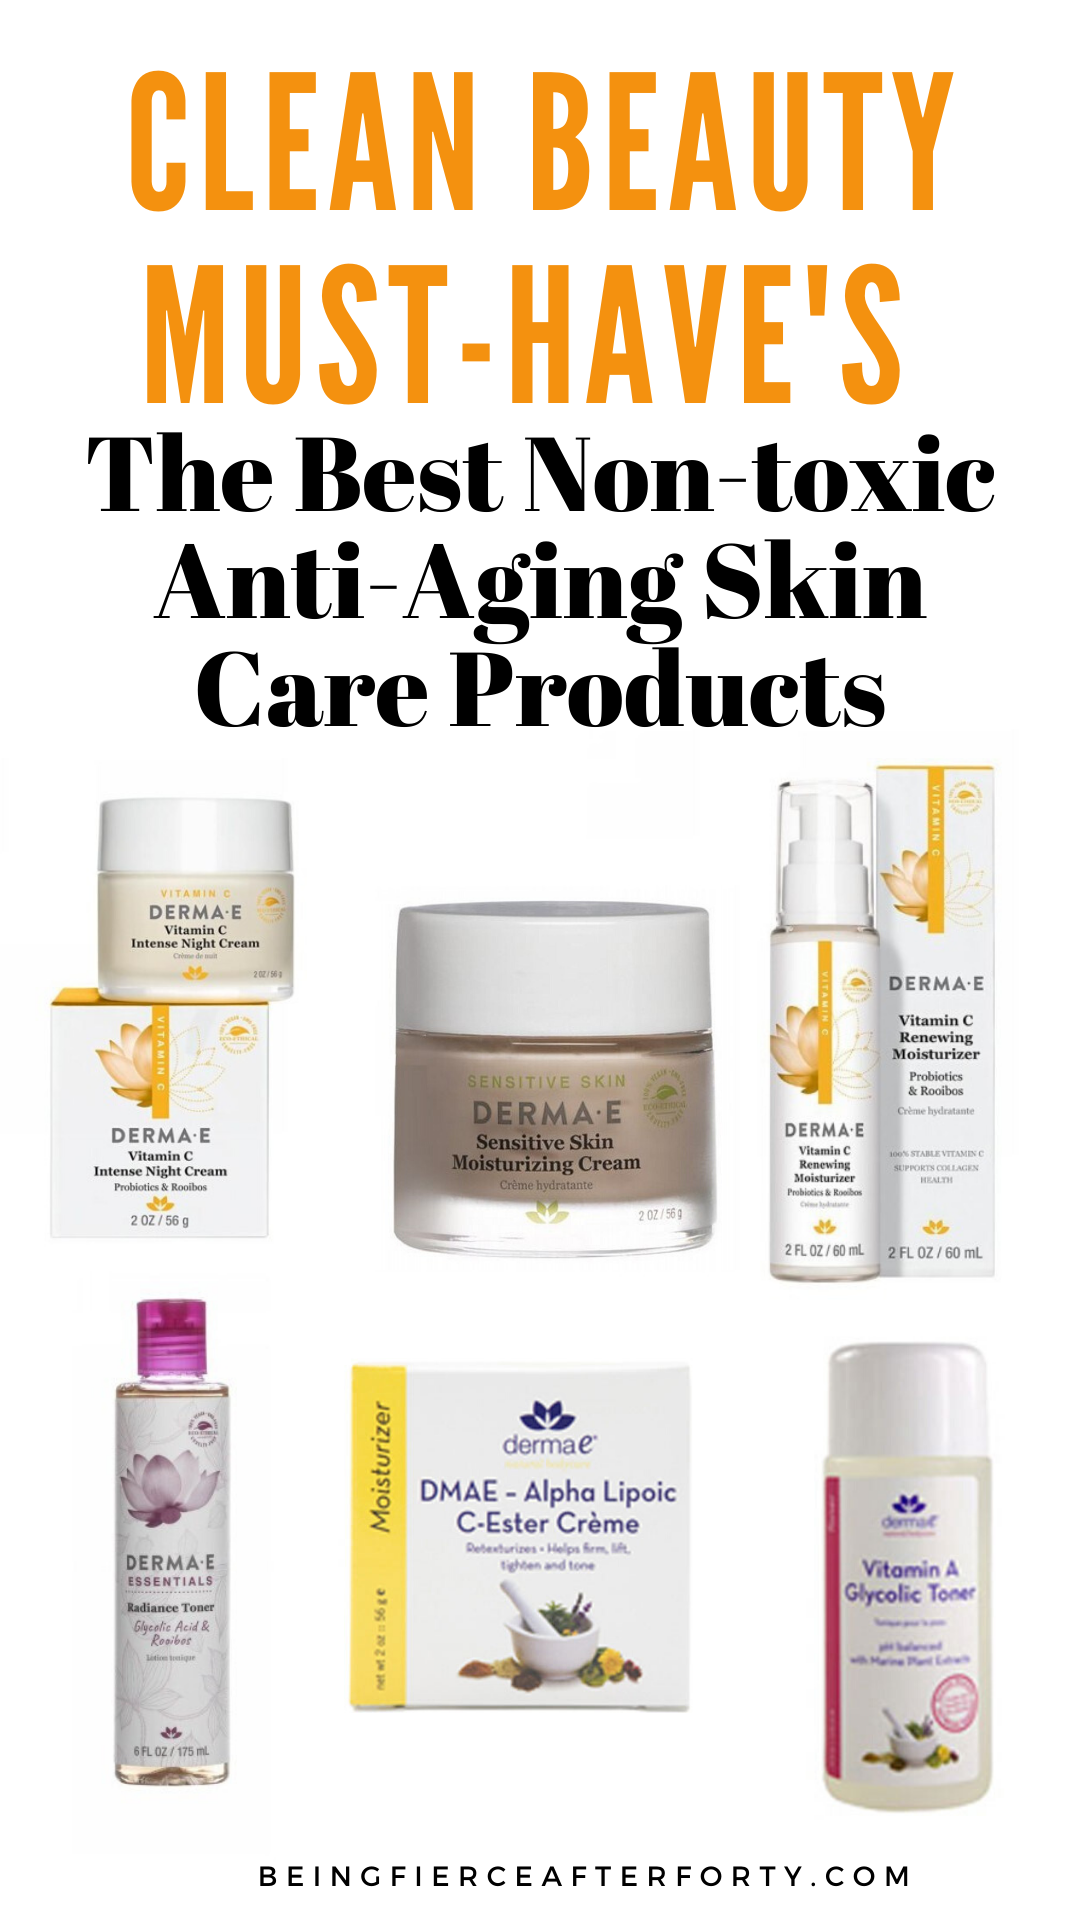 The Best Non Toxic Anti Aging Skin Care Products In 2020 Anti Aging Skin Products Aging Skin Care Skin Care